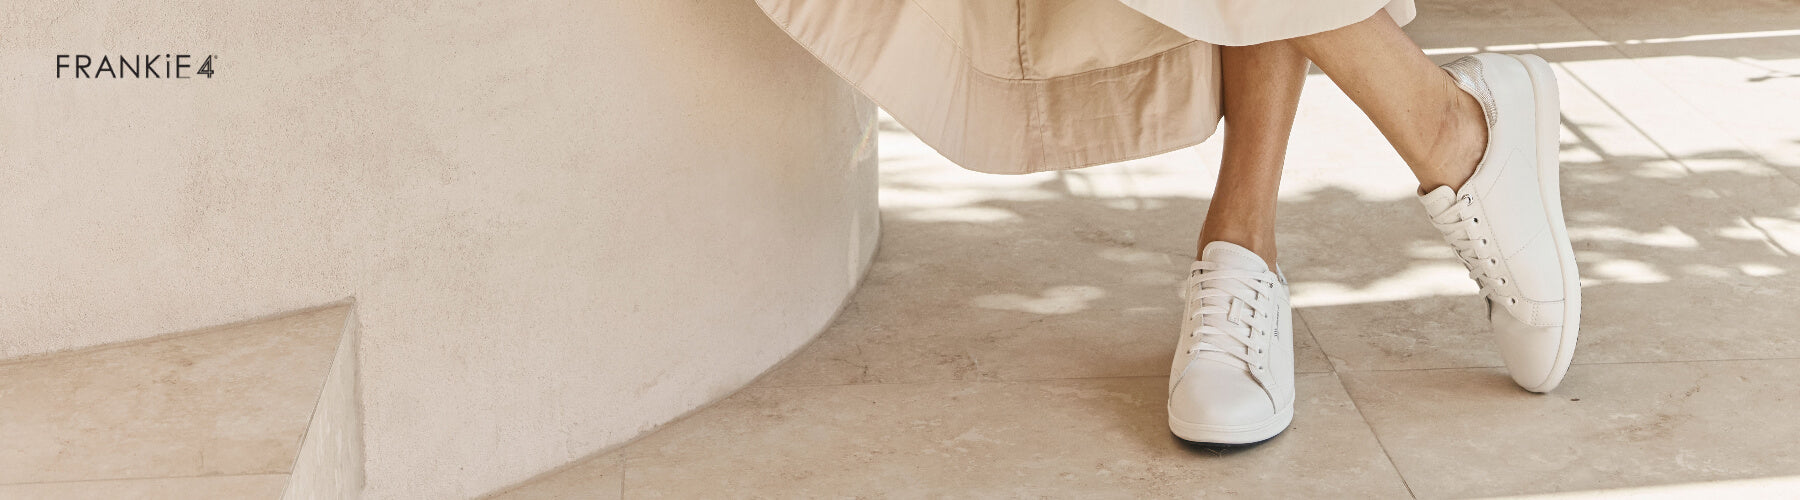 Womens FRANKiE4 Shoes